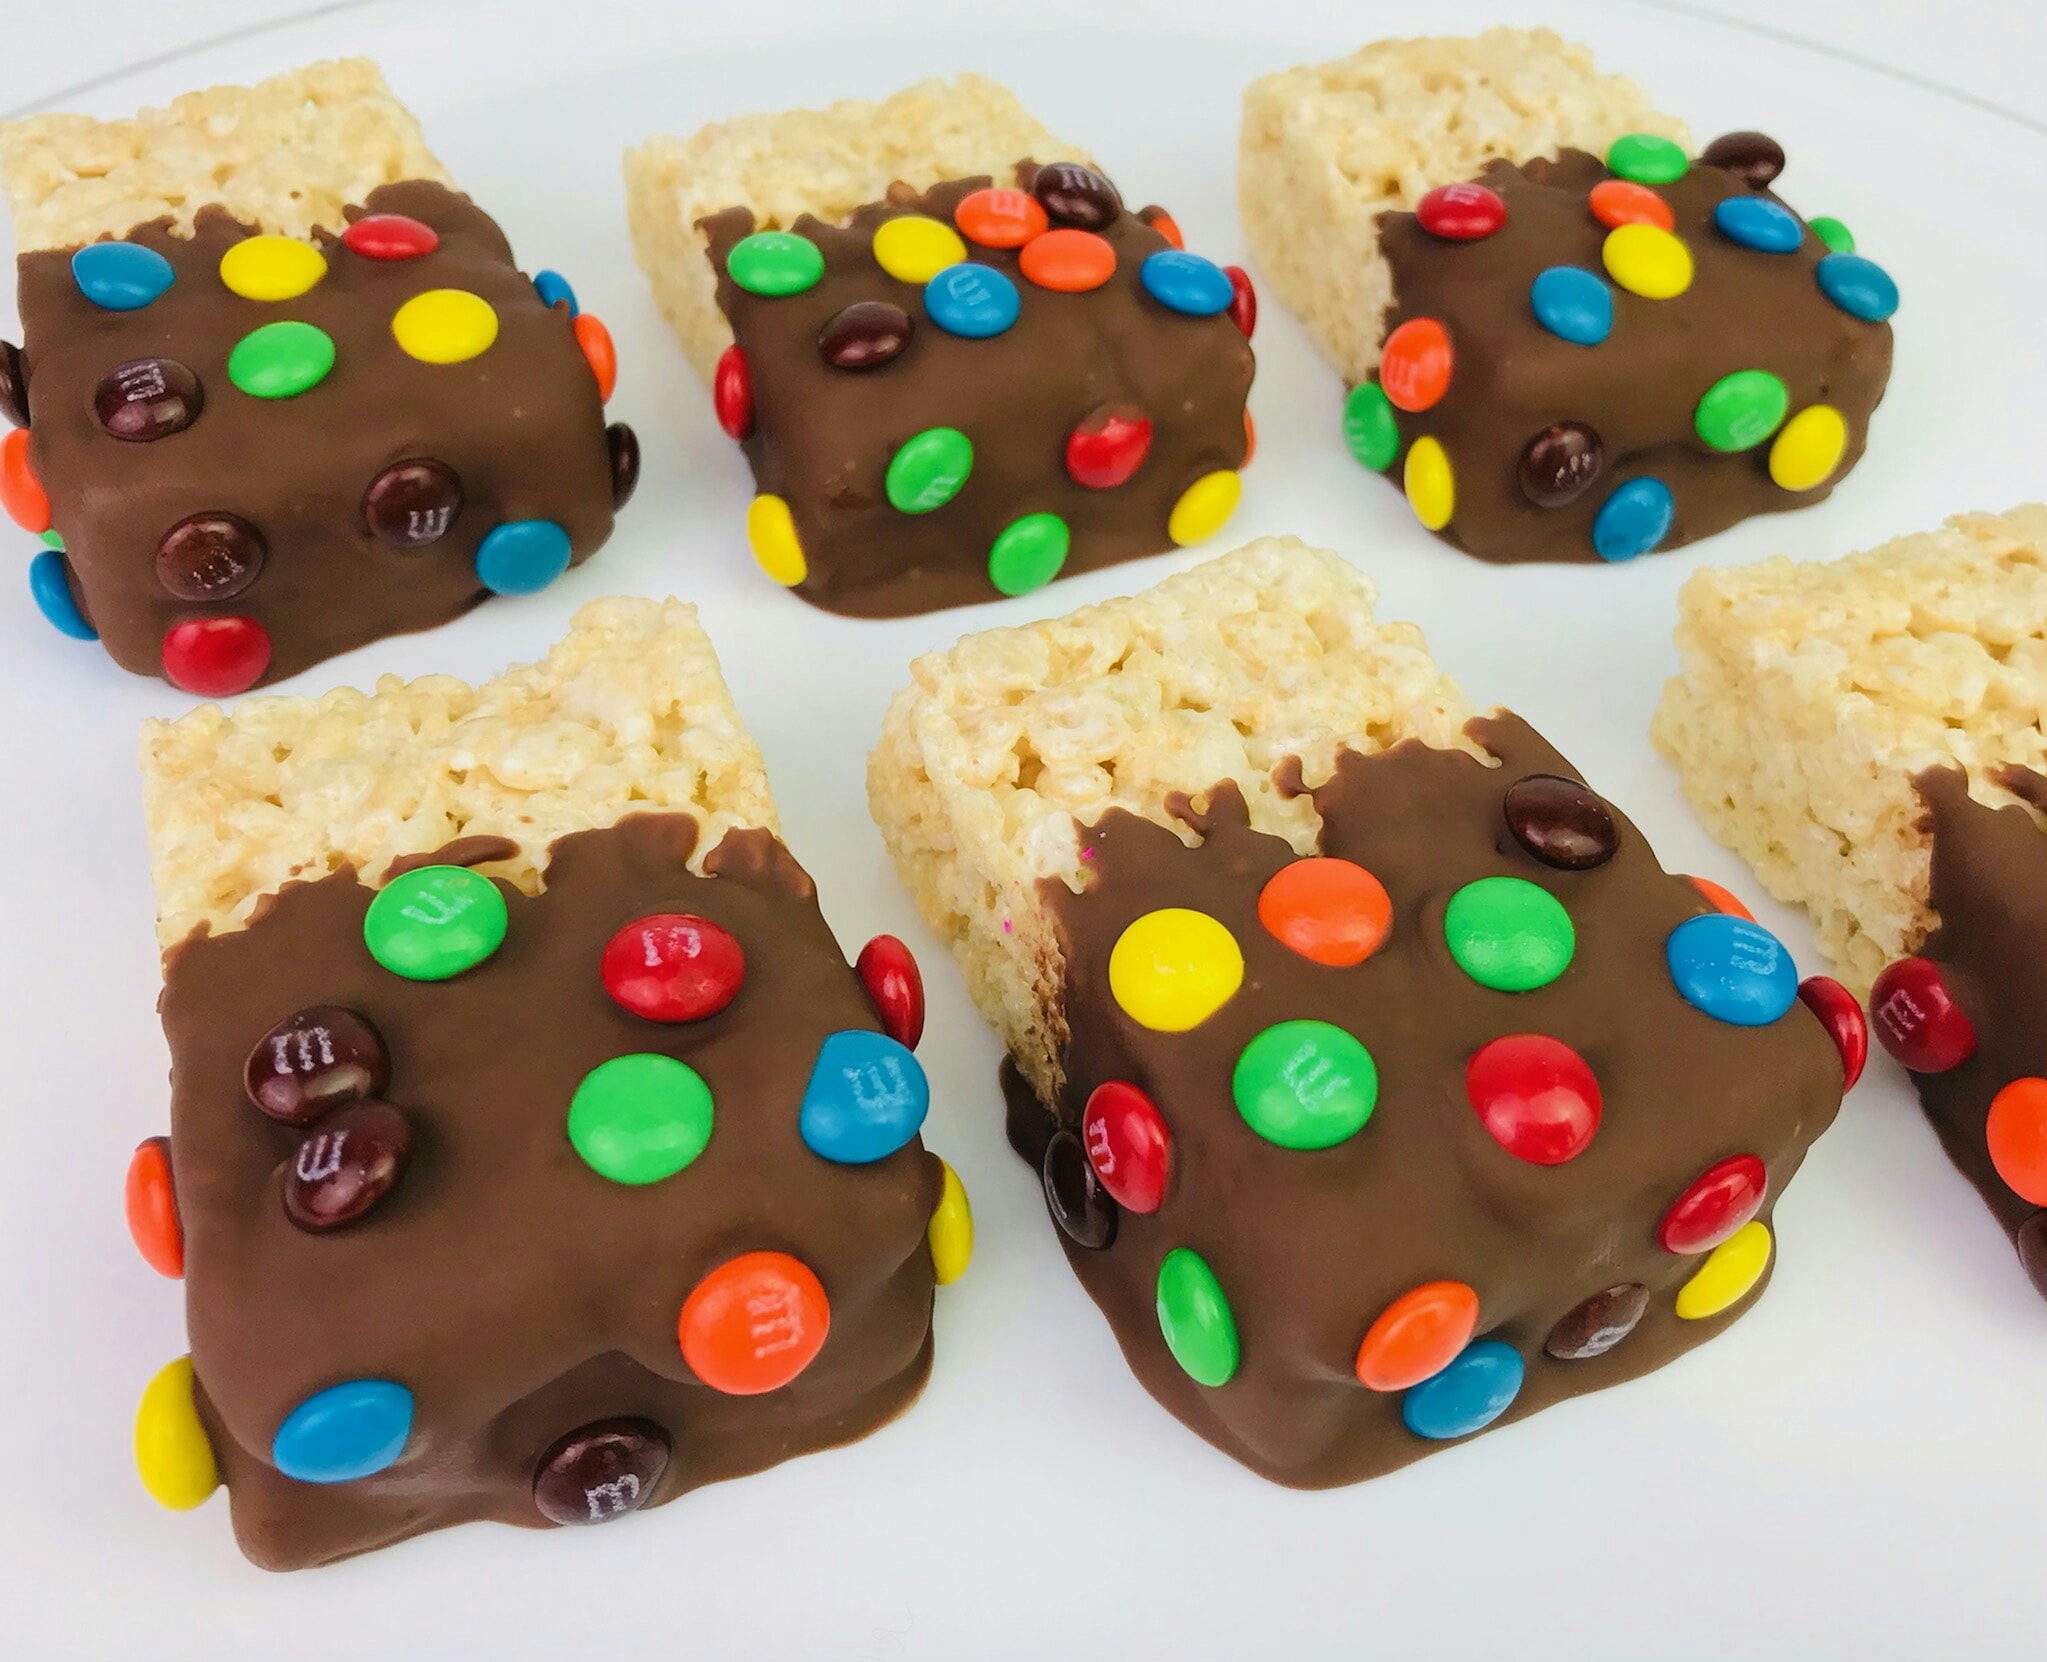 Decorated Cereal Treats